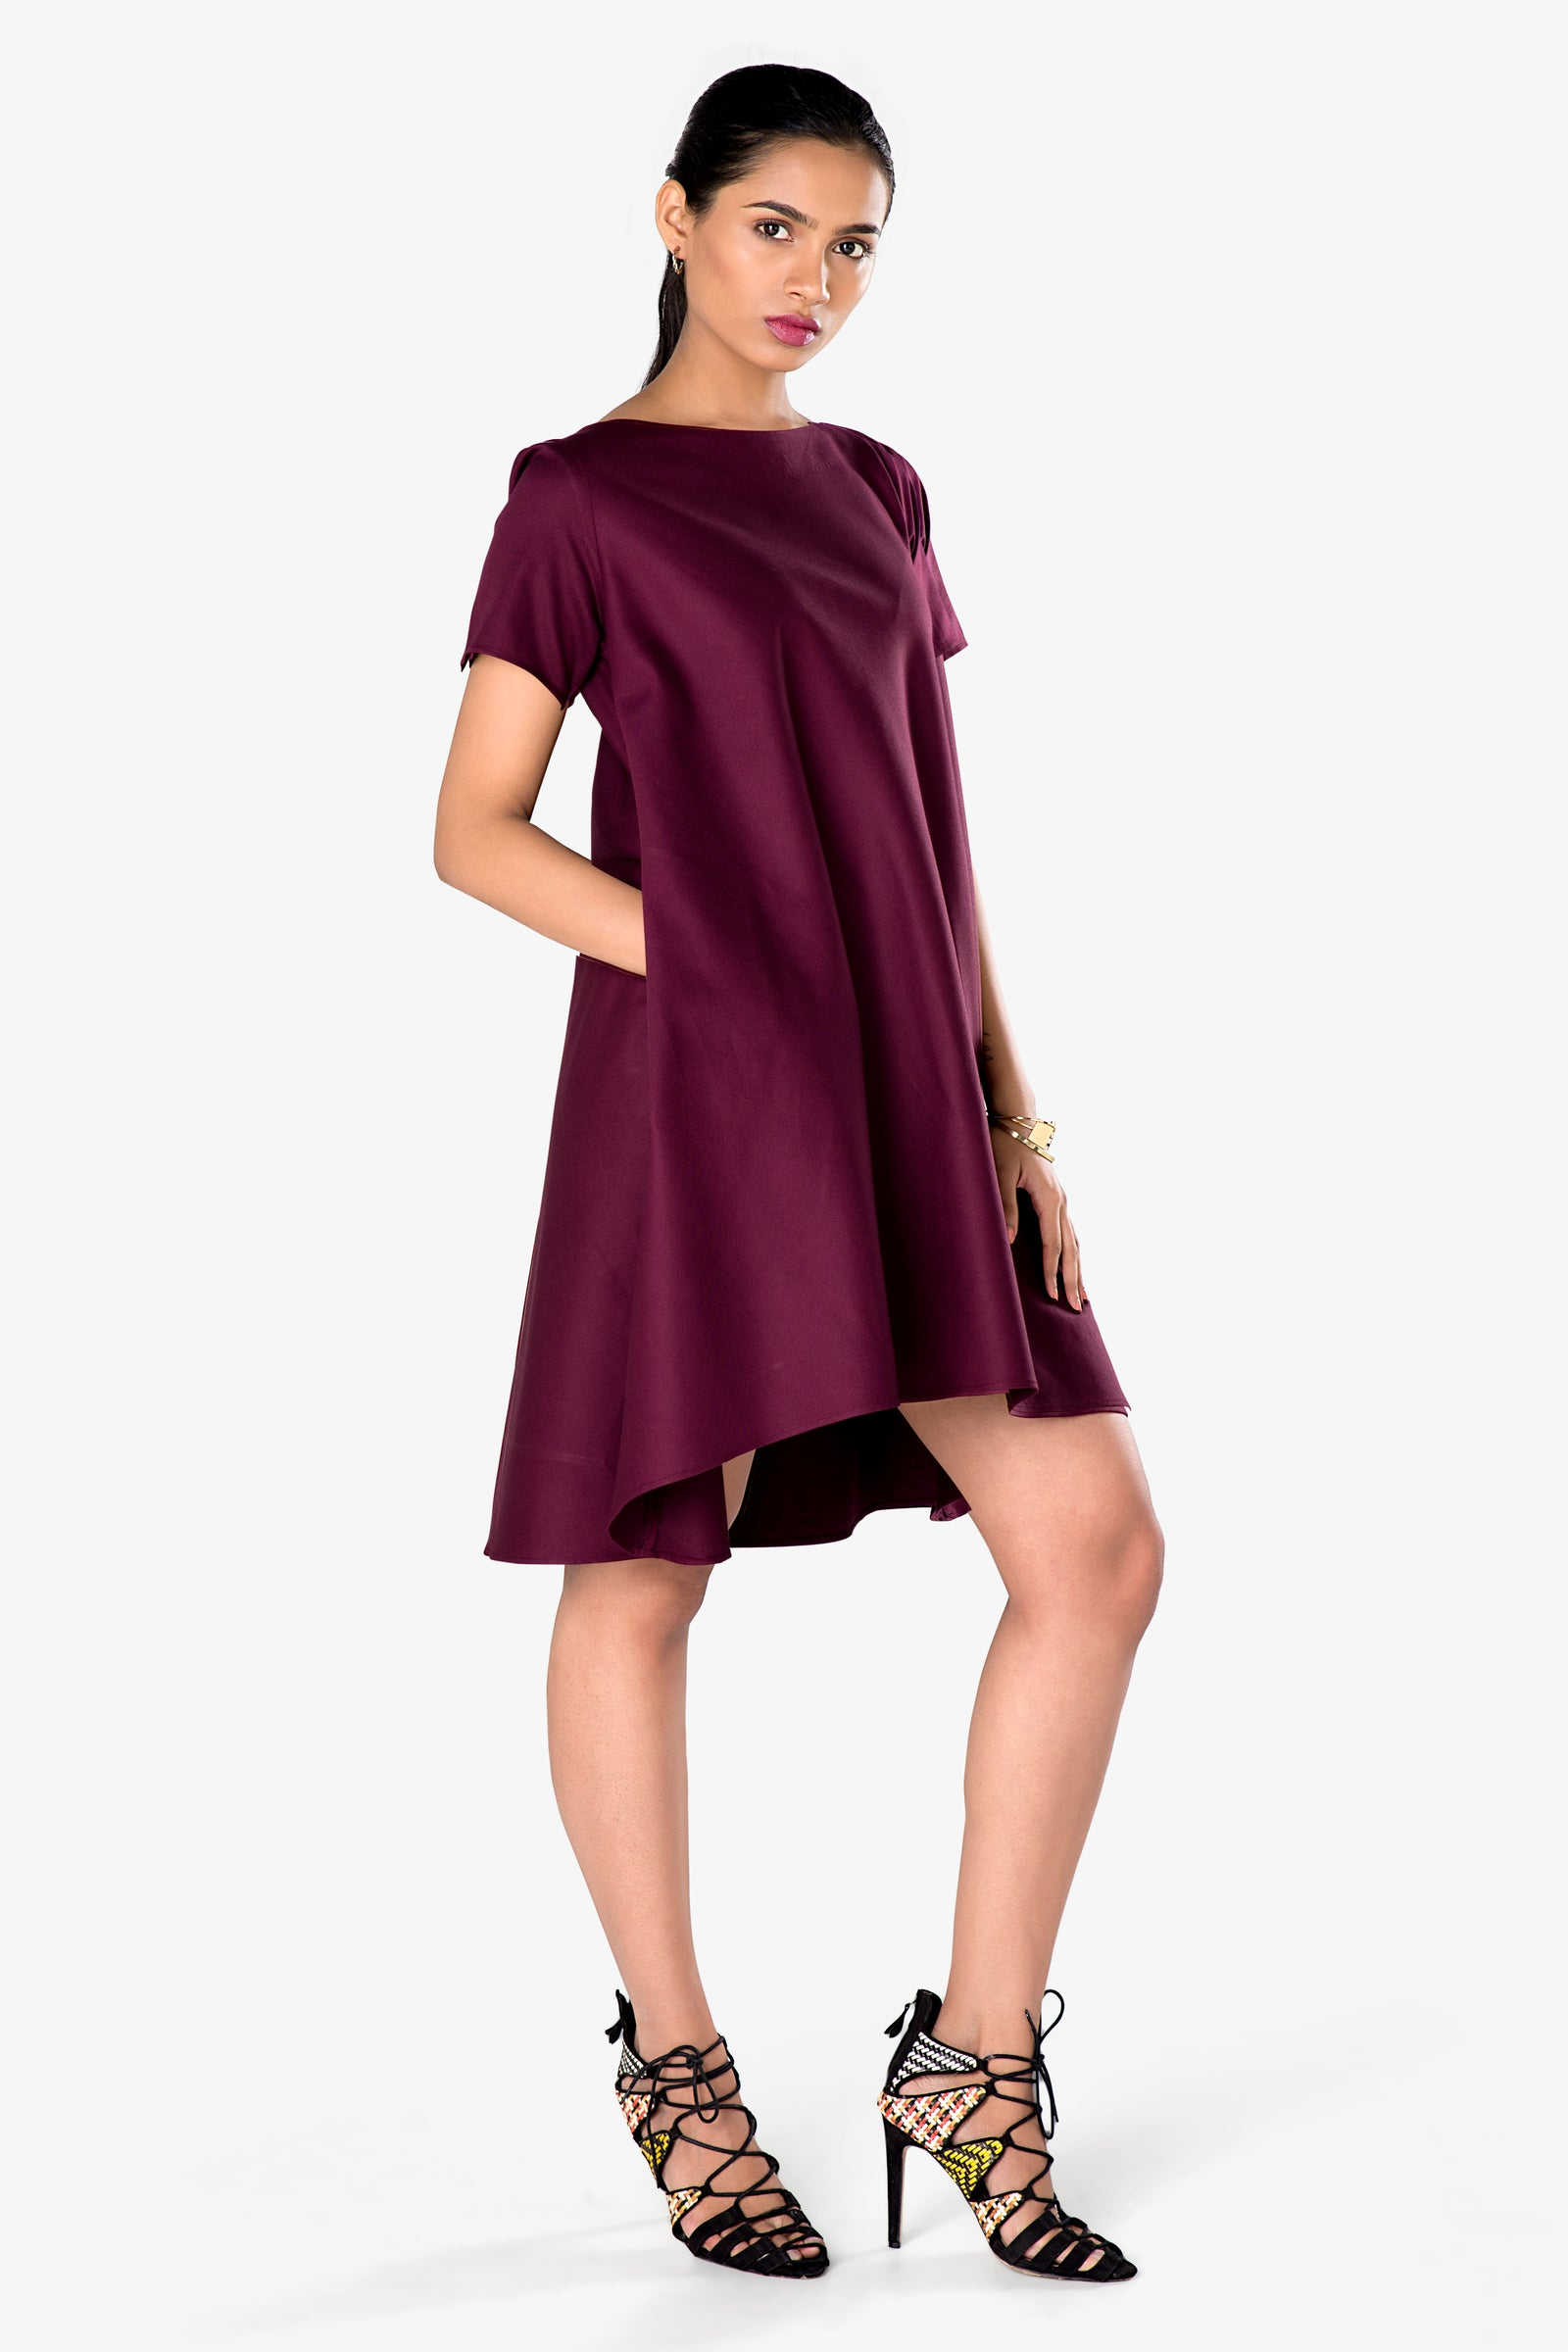 work dress maroon